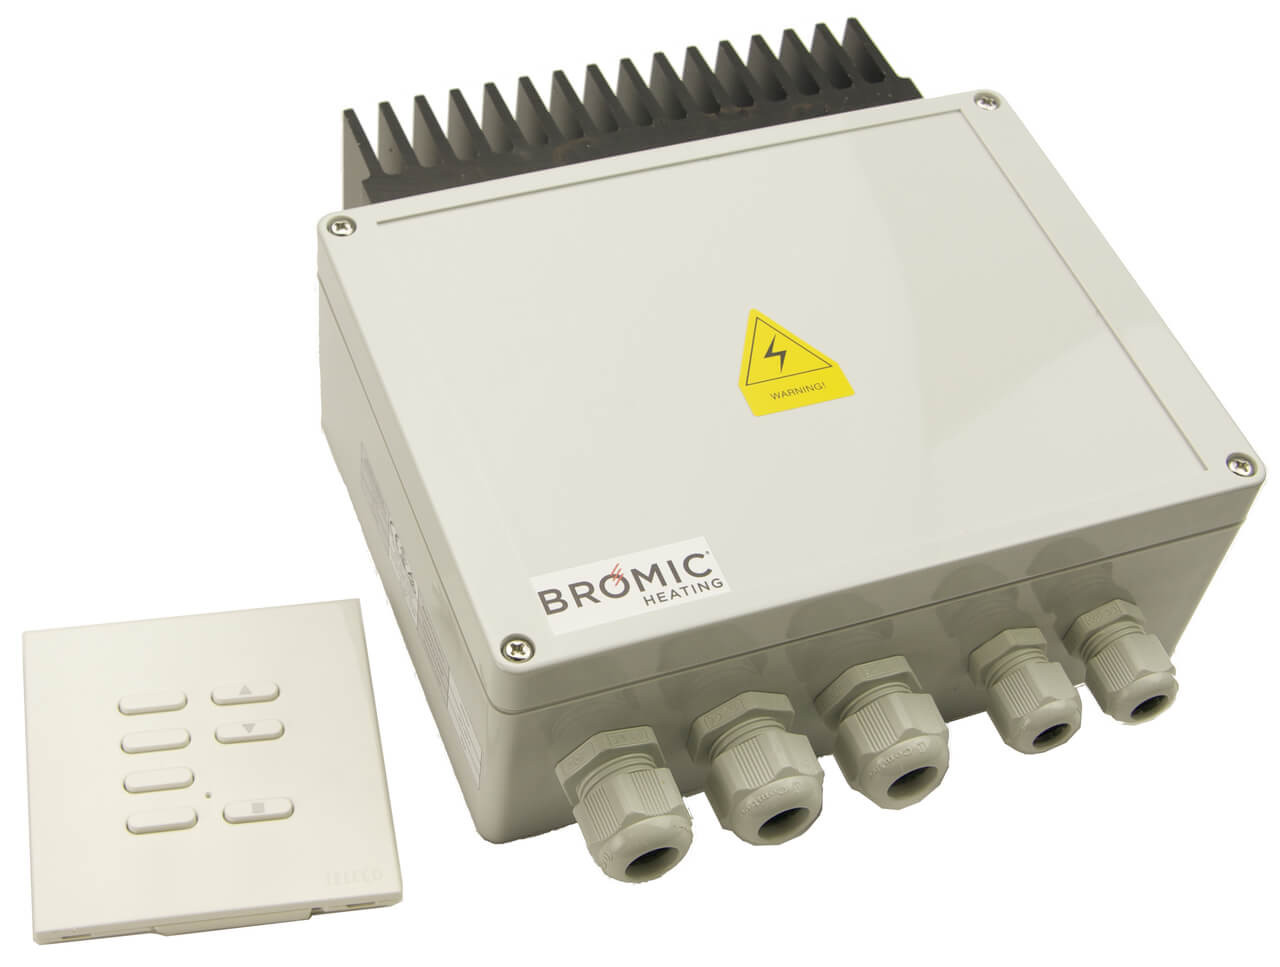 Bromic Heating Wireless Dimmer Controller. Includes Transmitter